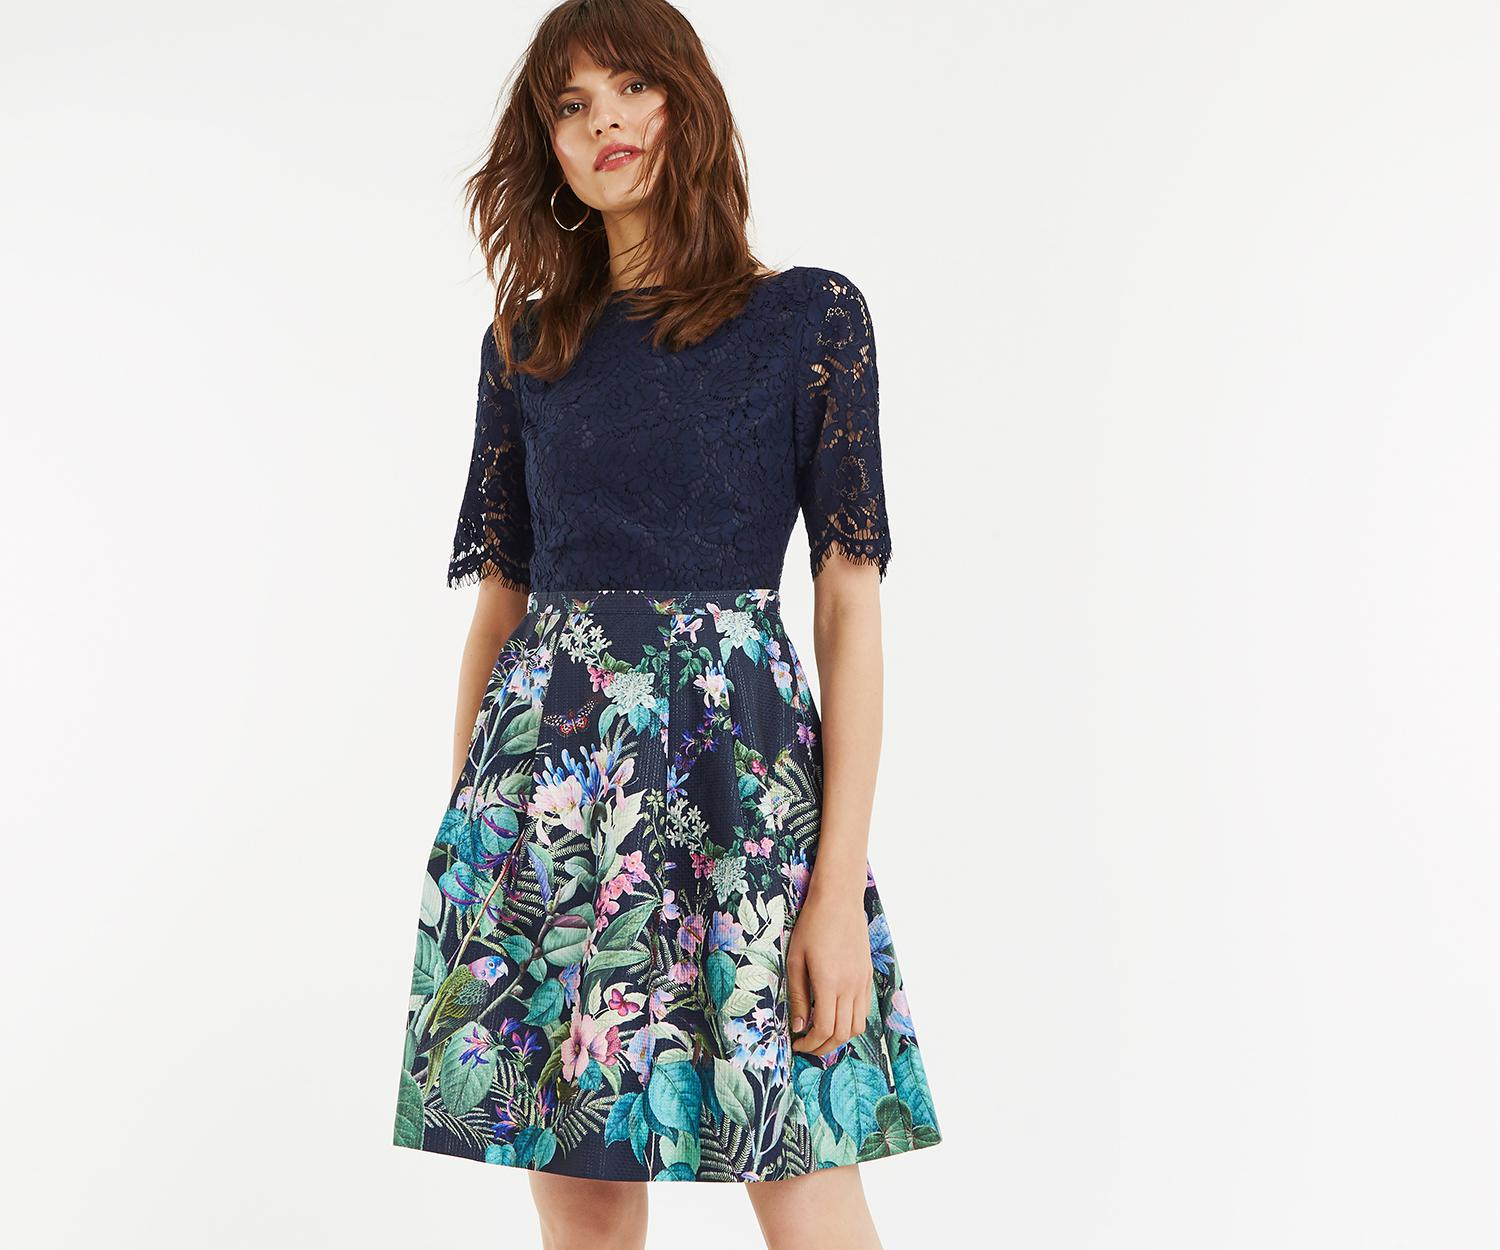 c2e8f01657e3 Lyst - Oasis Lace Top Bloom Skater Dress in Blue